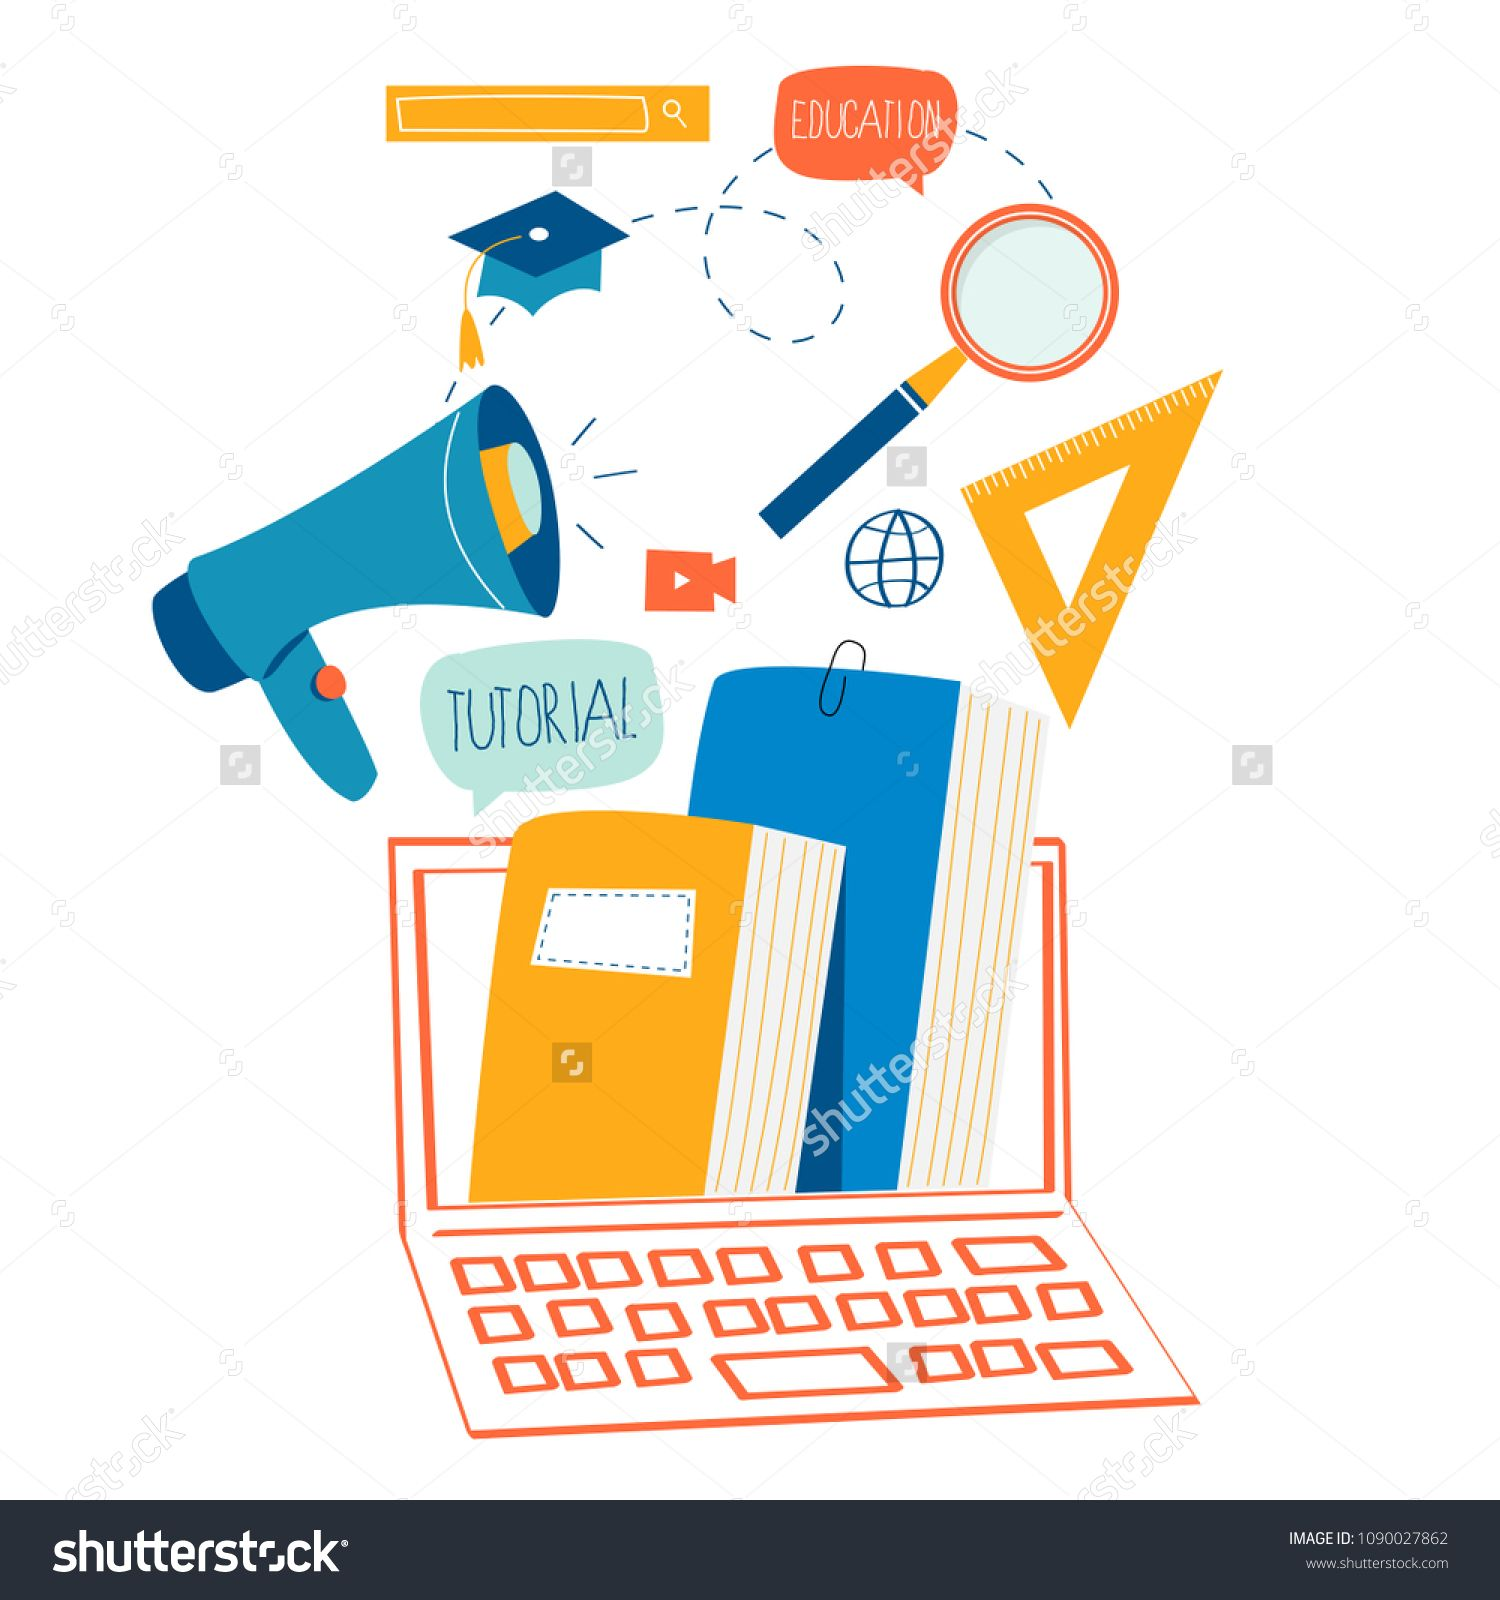 Education Online Training Courses Distance Education Flat Vector Illustration Internet Studying O In 2020 Online Training Courses Online Education Education Design